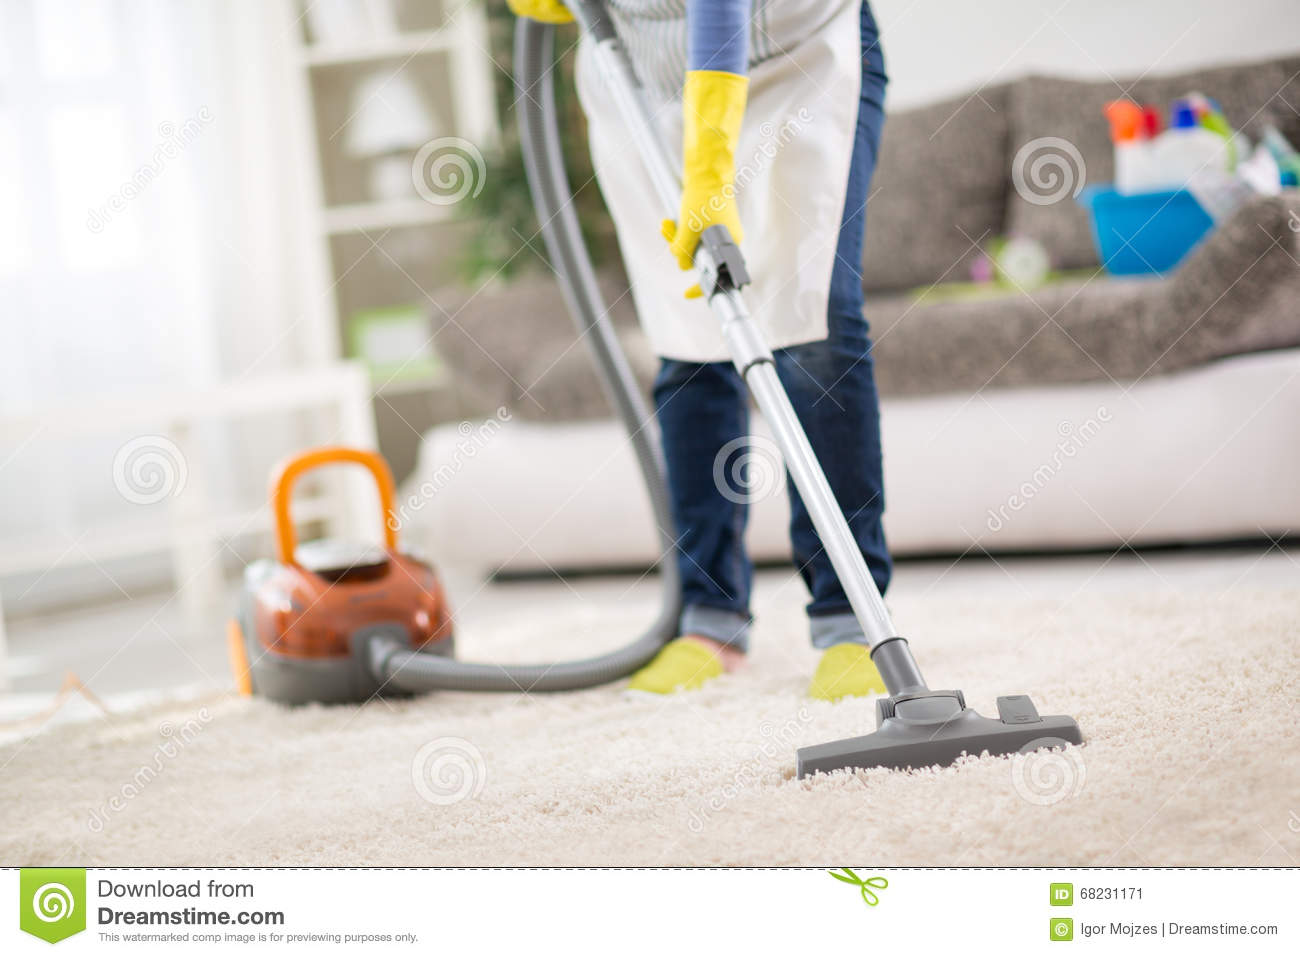 housewife-clean-carpet-vacuum-cleaner-cleaning-service-cleans-68231171.jpg